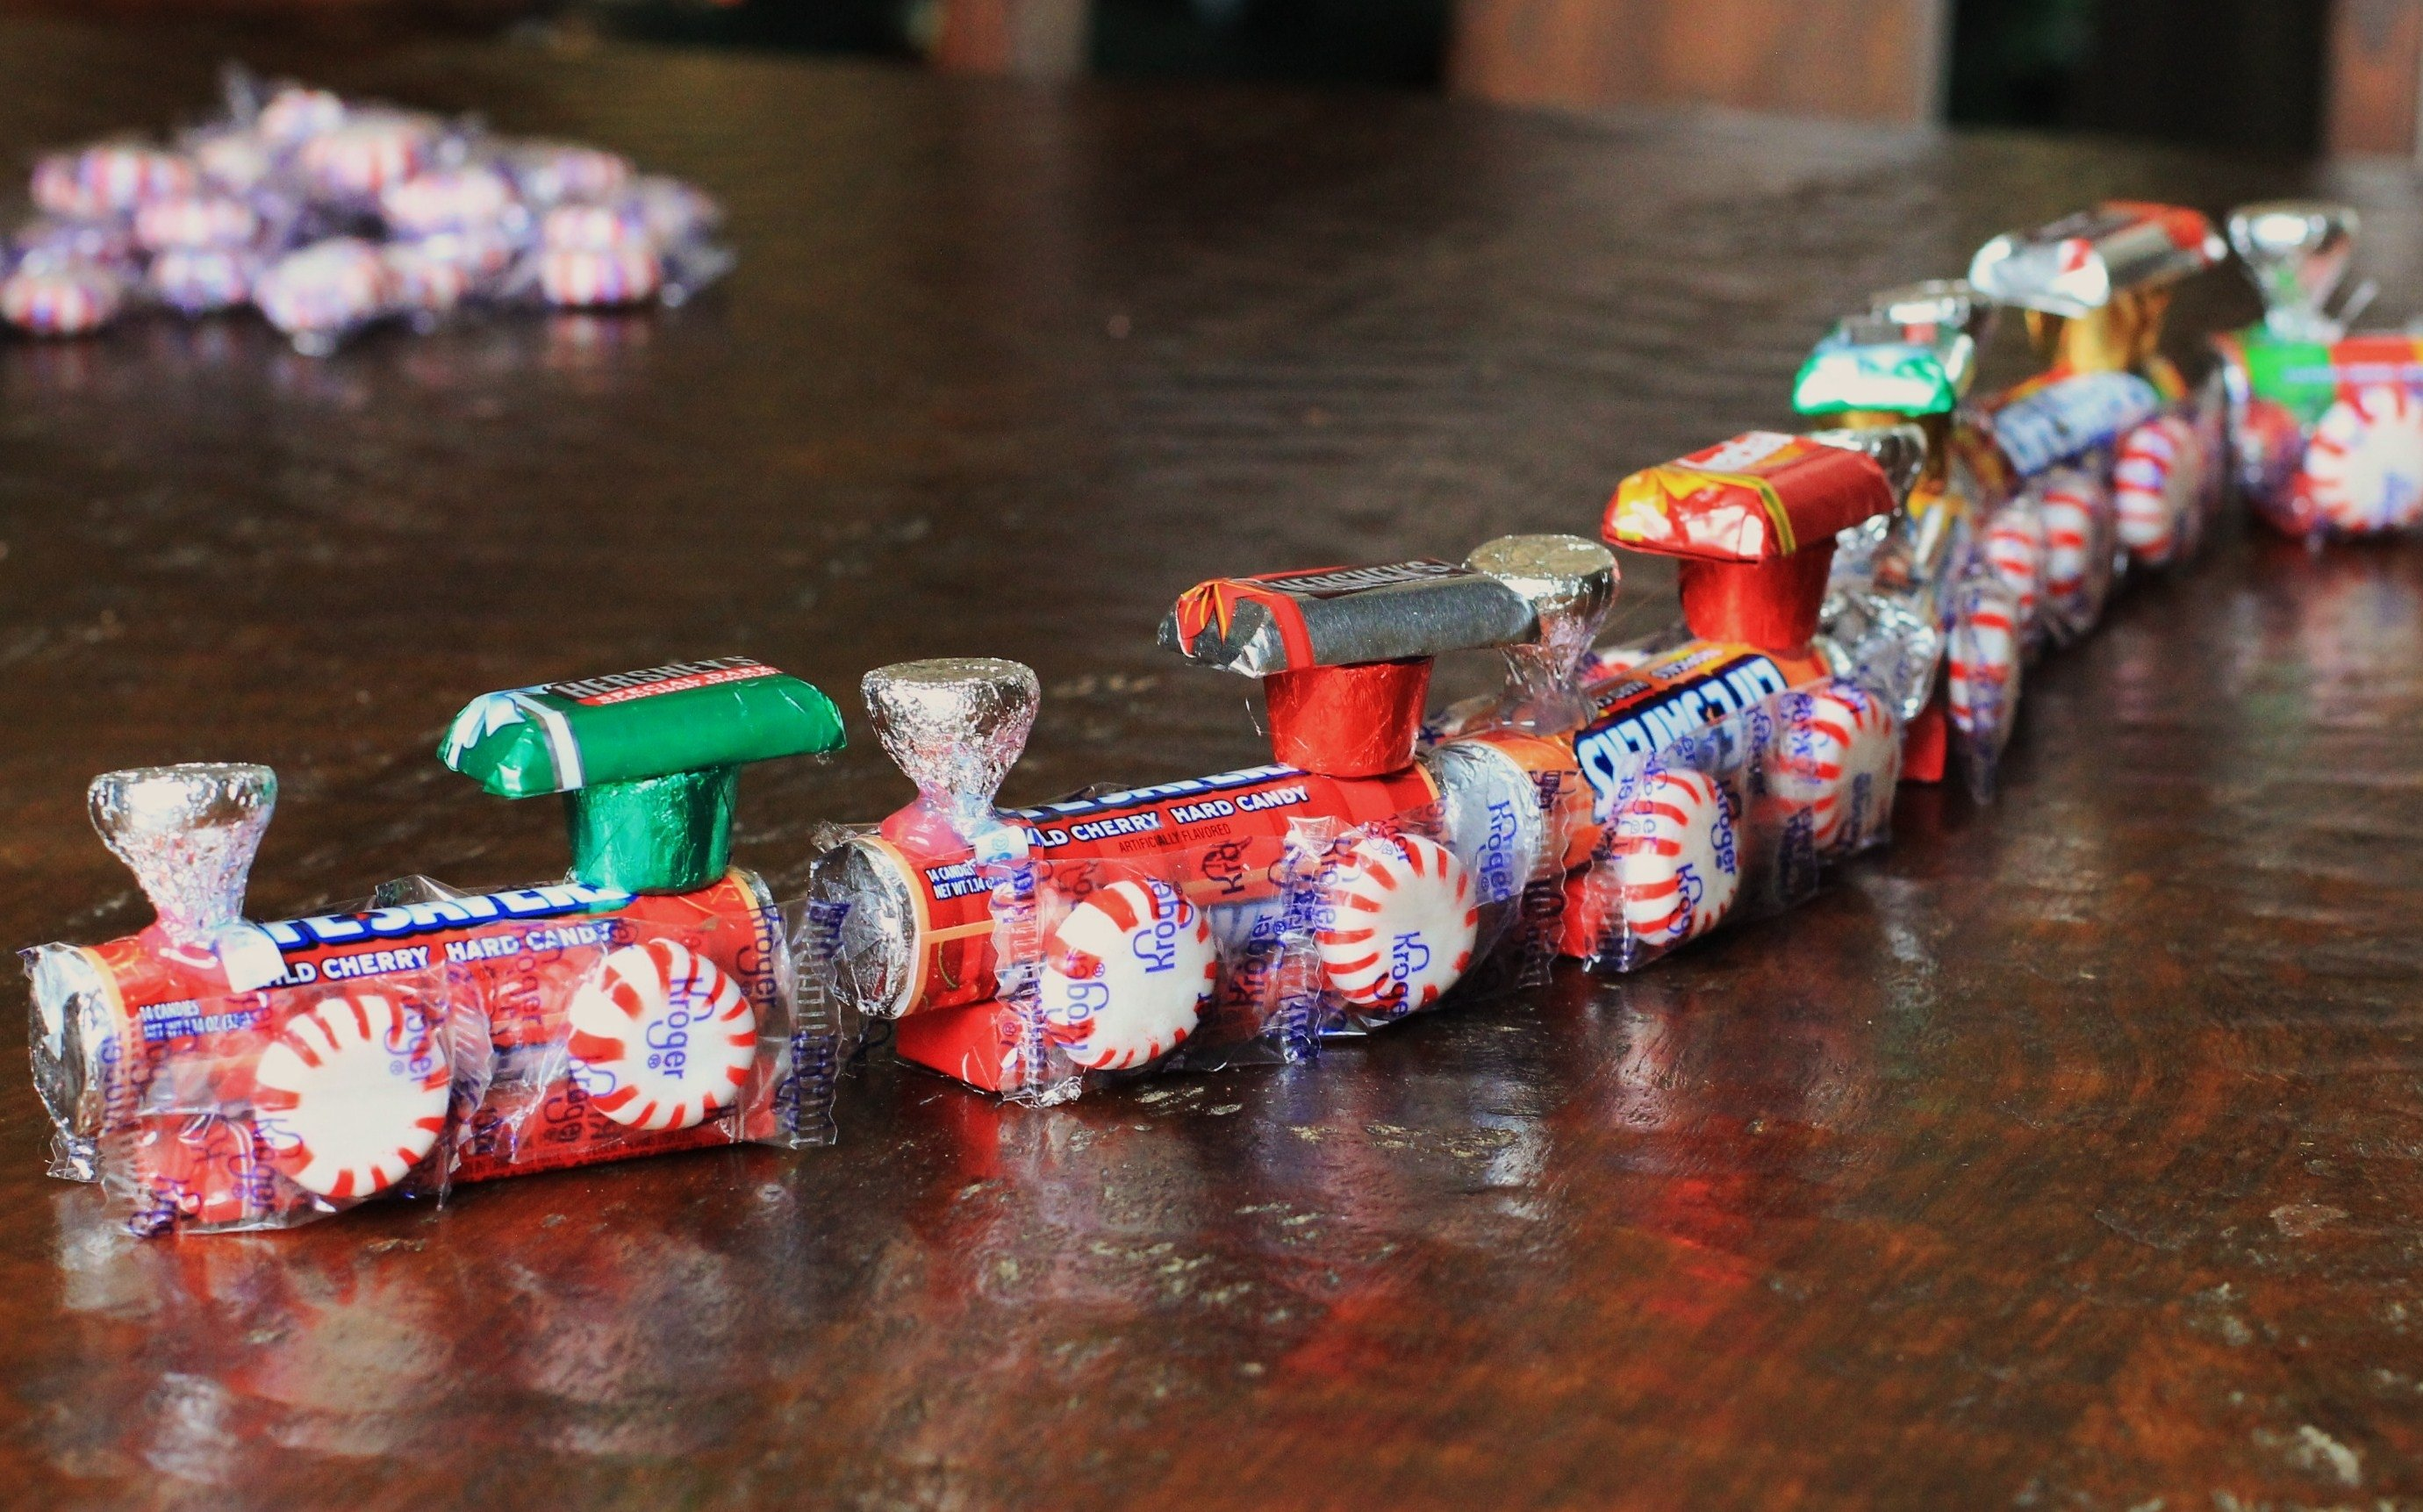 10 Ideal Christmas Ideas For Kids To Make 5 days of frugal christmas ideas how to make a candy train